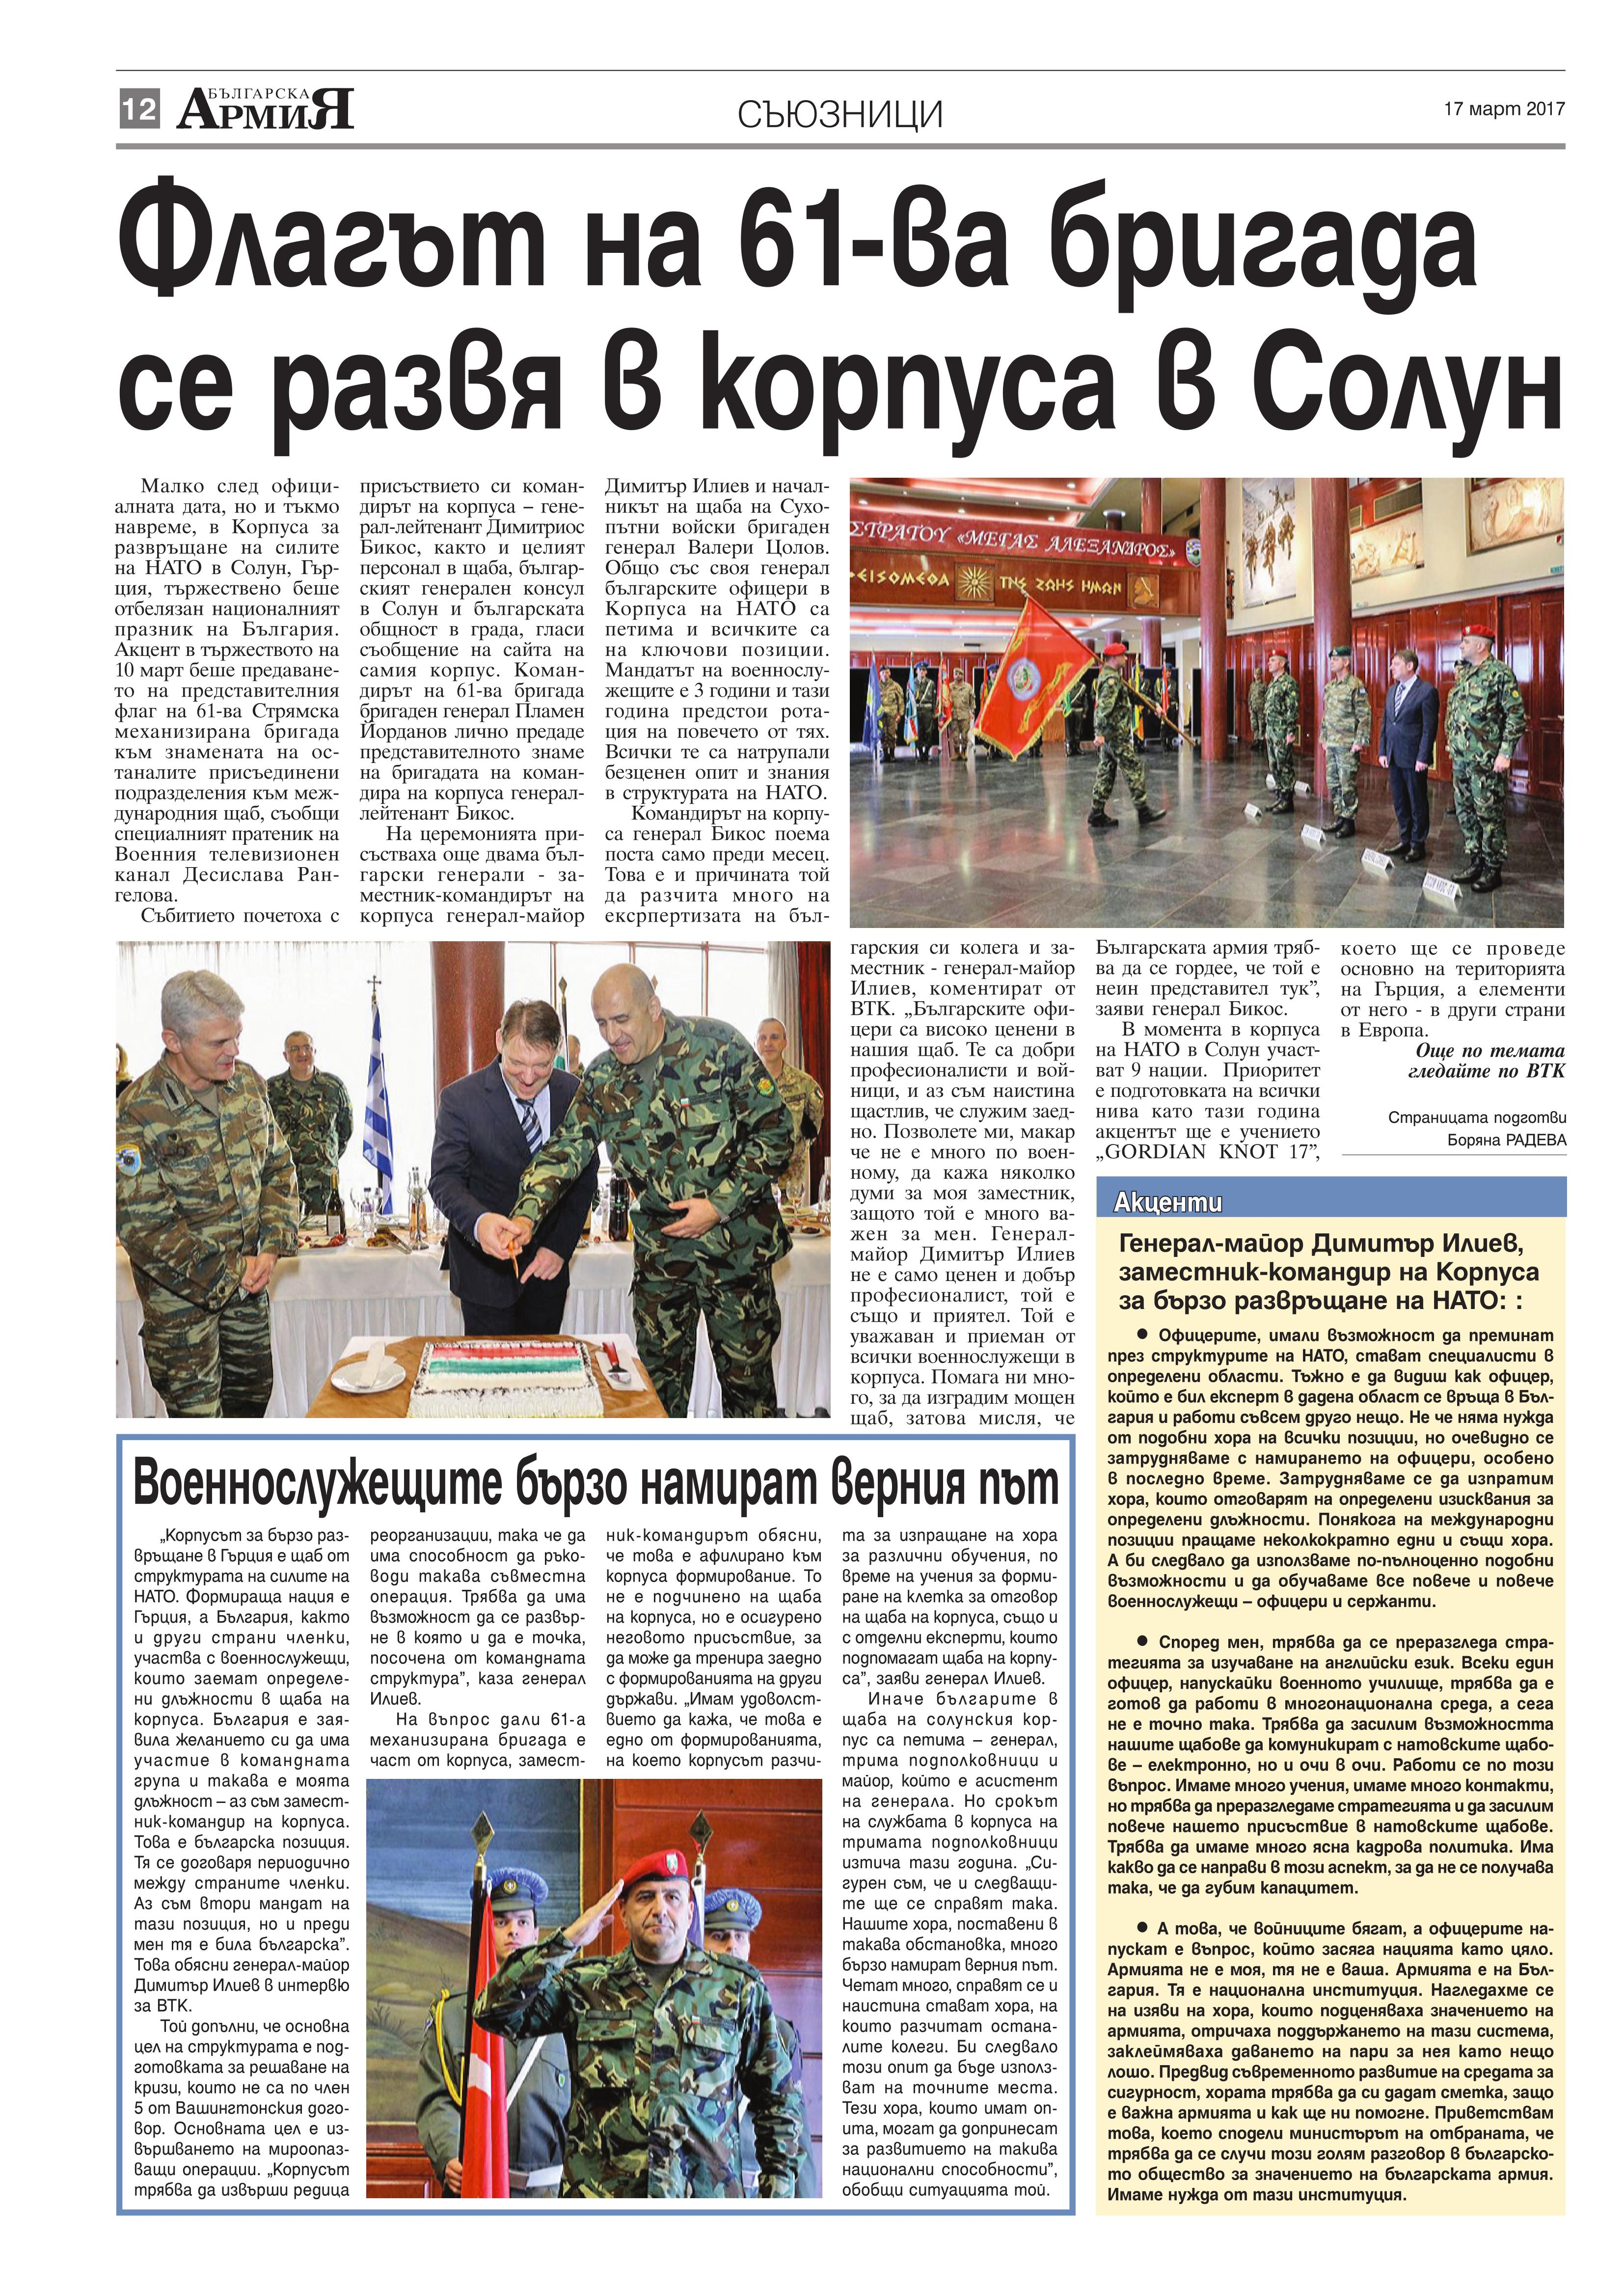 https://www.armymedia.bg/wp-content/uploads/2015/06/12.page1_-17.jpg